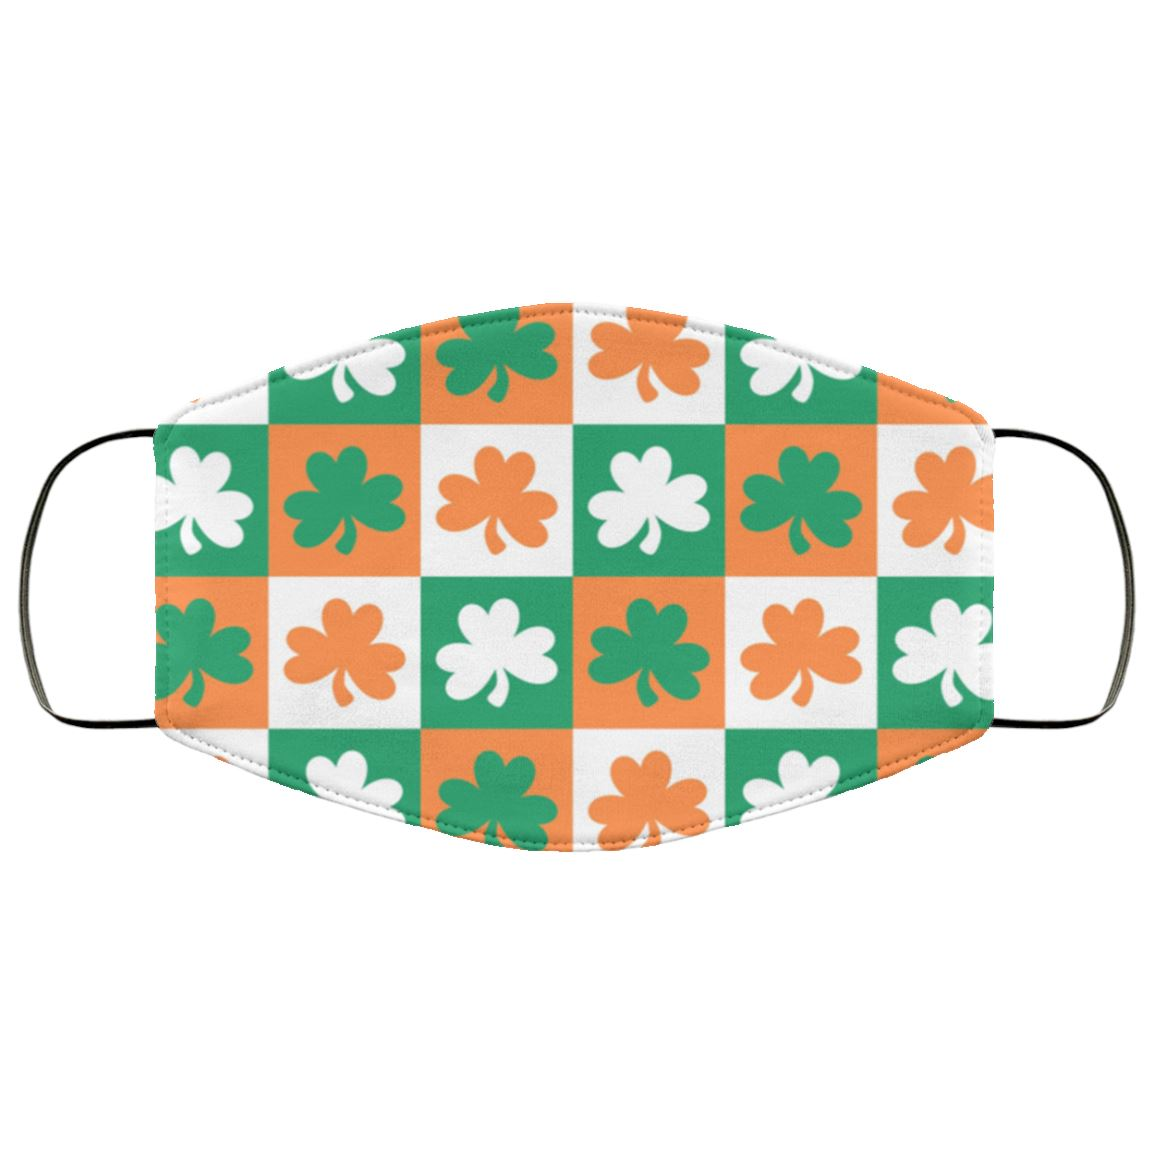 Irish Shamrock Face Cover